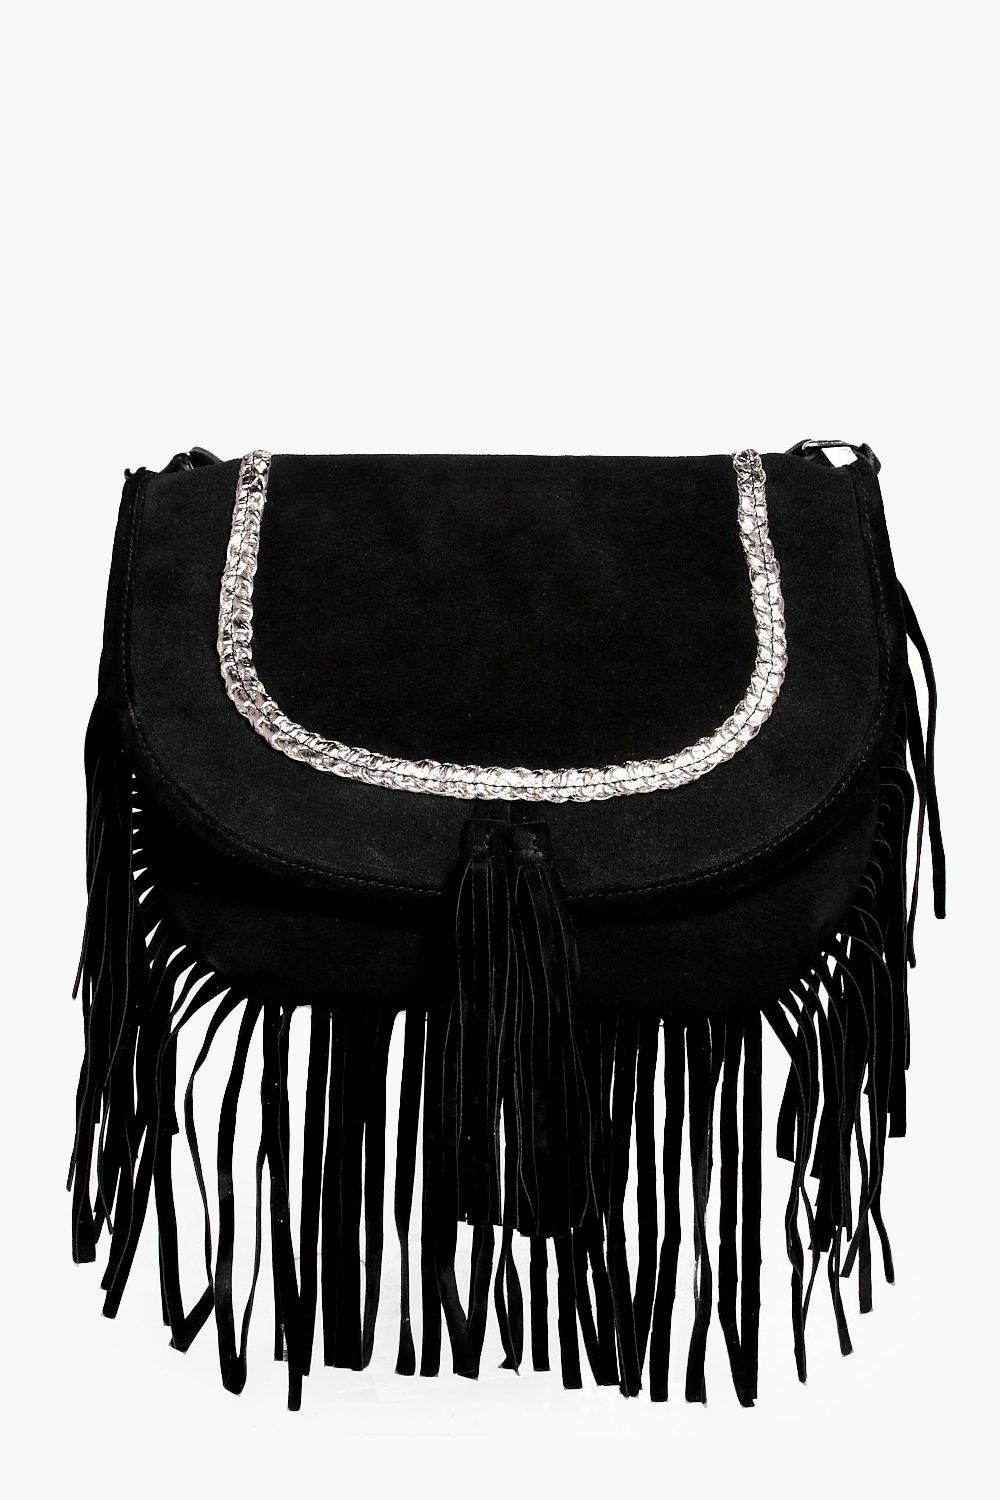 Boutique Suede Plait Cross Body Bag - black - Holl